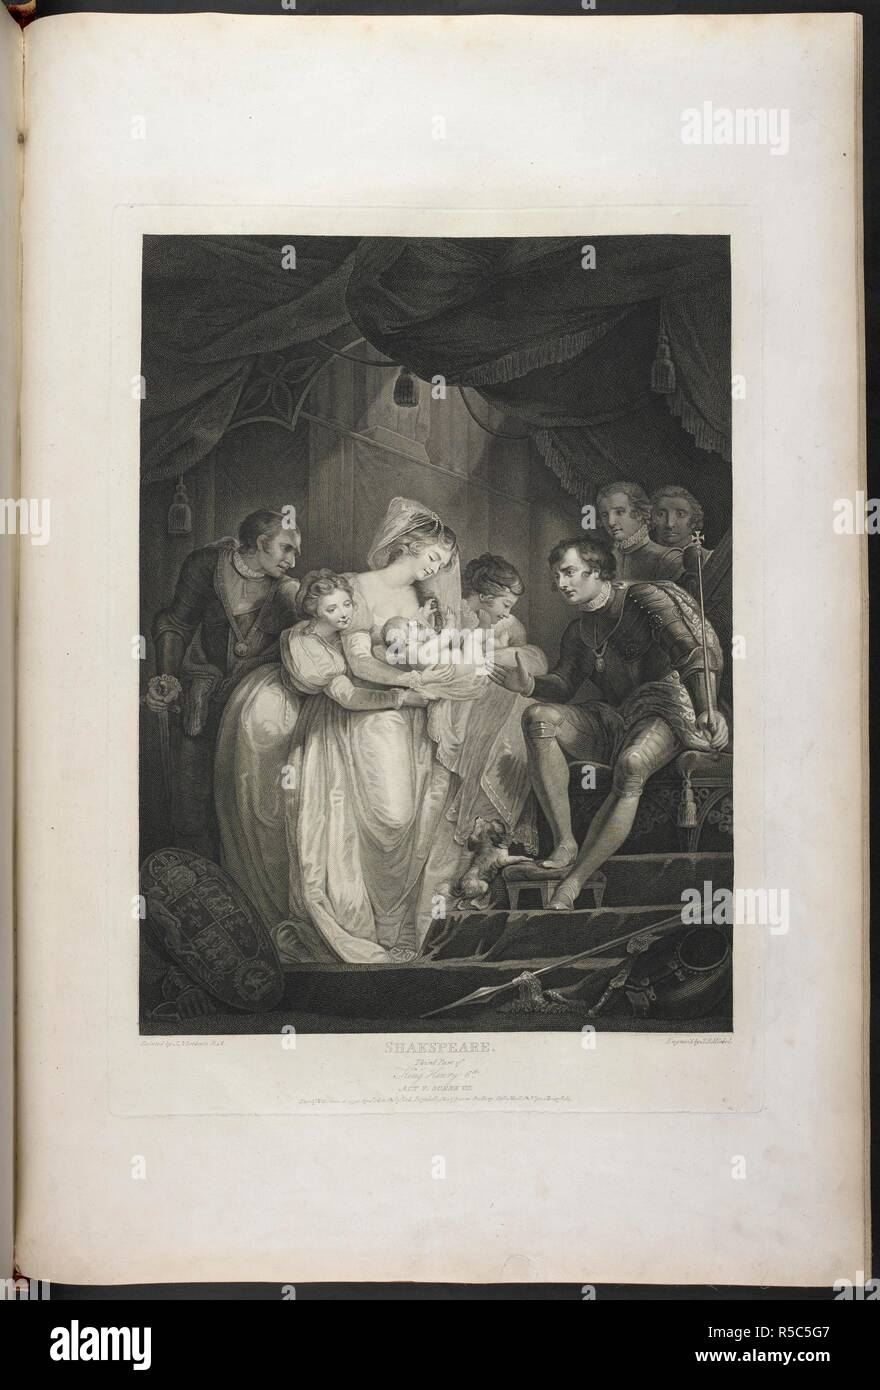 """Third Part of King Henry VI act V scene VII- King Edward is discovered in the Royal Palace sitting on his throne. By his side is Queen Elizabeth with the infant Prince. Clarence, Gloster, Hastings, and others are also present. King Edward states, """"Come Hither, Bess, and let me Kiss my boy ..."""". A Collection of Prints, from pictures painted for the purpose of illustrating the Dramatic Works of Shakspeare, by the Artists of Great Britain. London : J. & J. Boydell, 1803. Source: Tab.599.c vol. II, plate XXI. Language: English. Author: SHAKESPEARE, WILLIAM. Northcote, J. Stock Photo"""